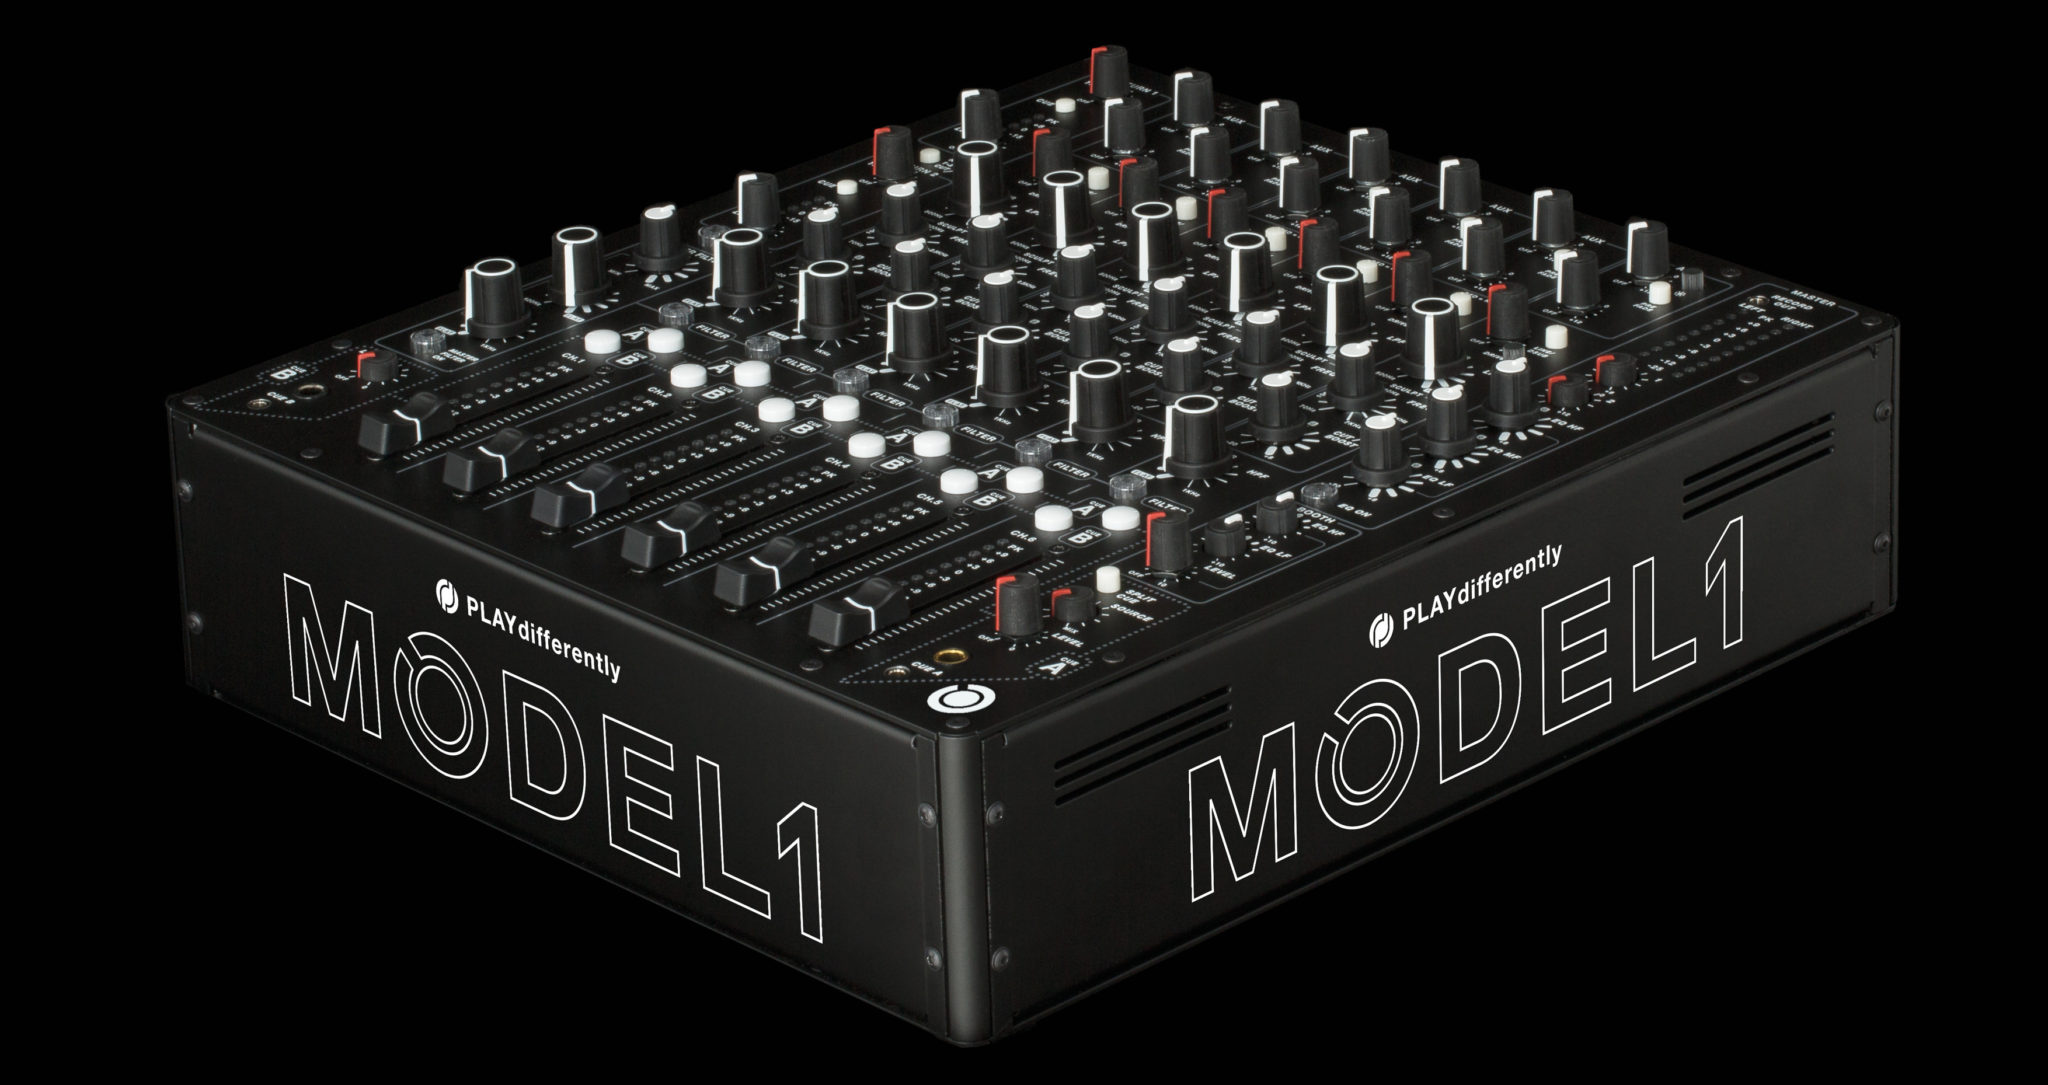 PLAYdifferently Model 1: Hands-On With Richie Hawtin - DJ TechTools